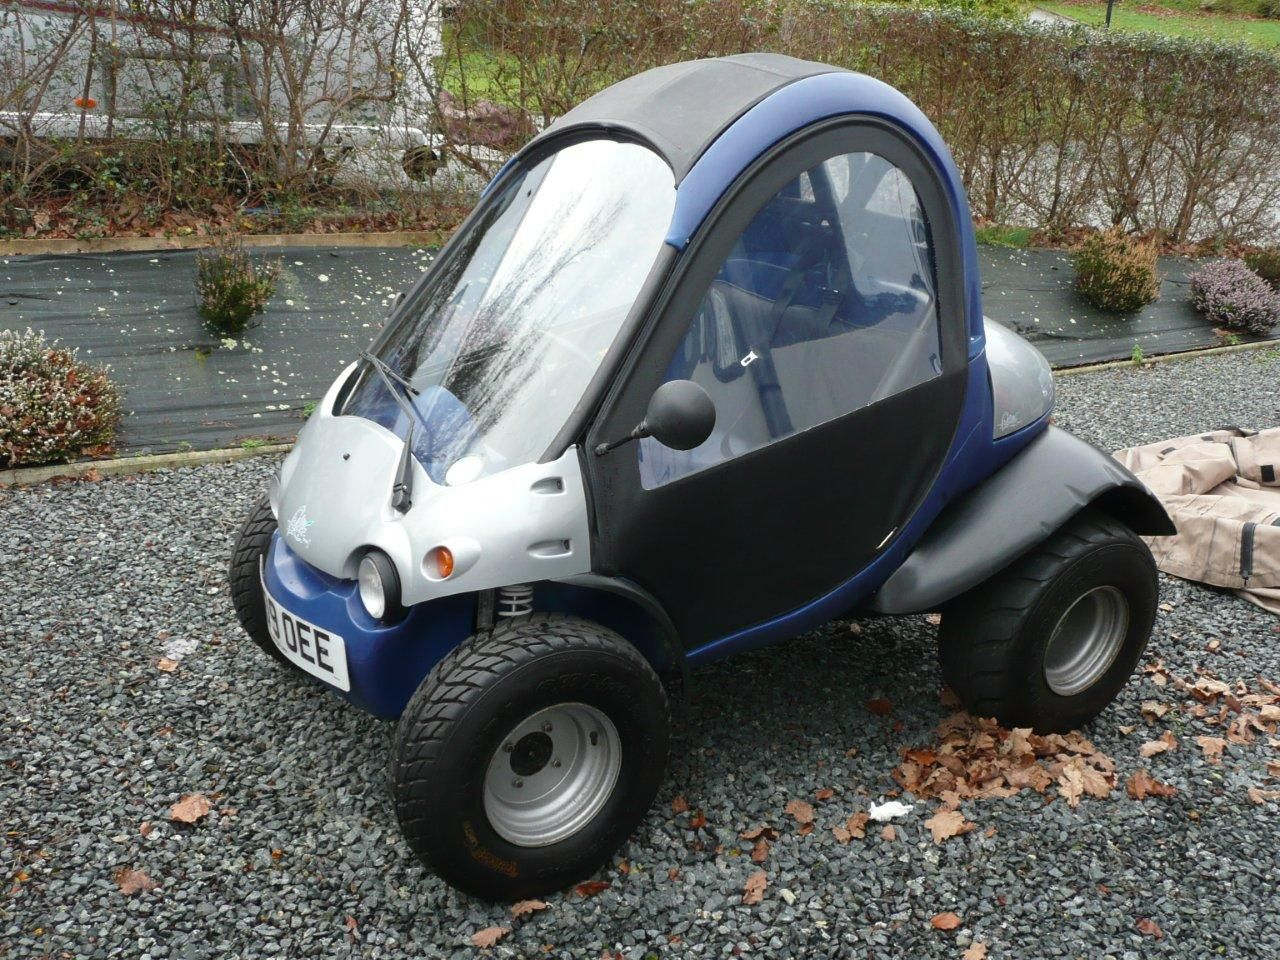 Secma Qpod Club Nice Wheels Pinterest Cars Vehicles And Microcar The Bmw I1 Is An Electric Singleseater Trikecar Concept By Designer Vehicle City Car Small